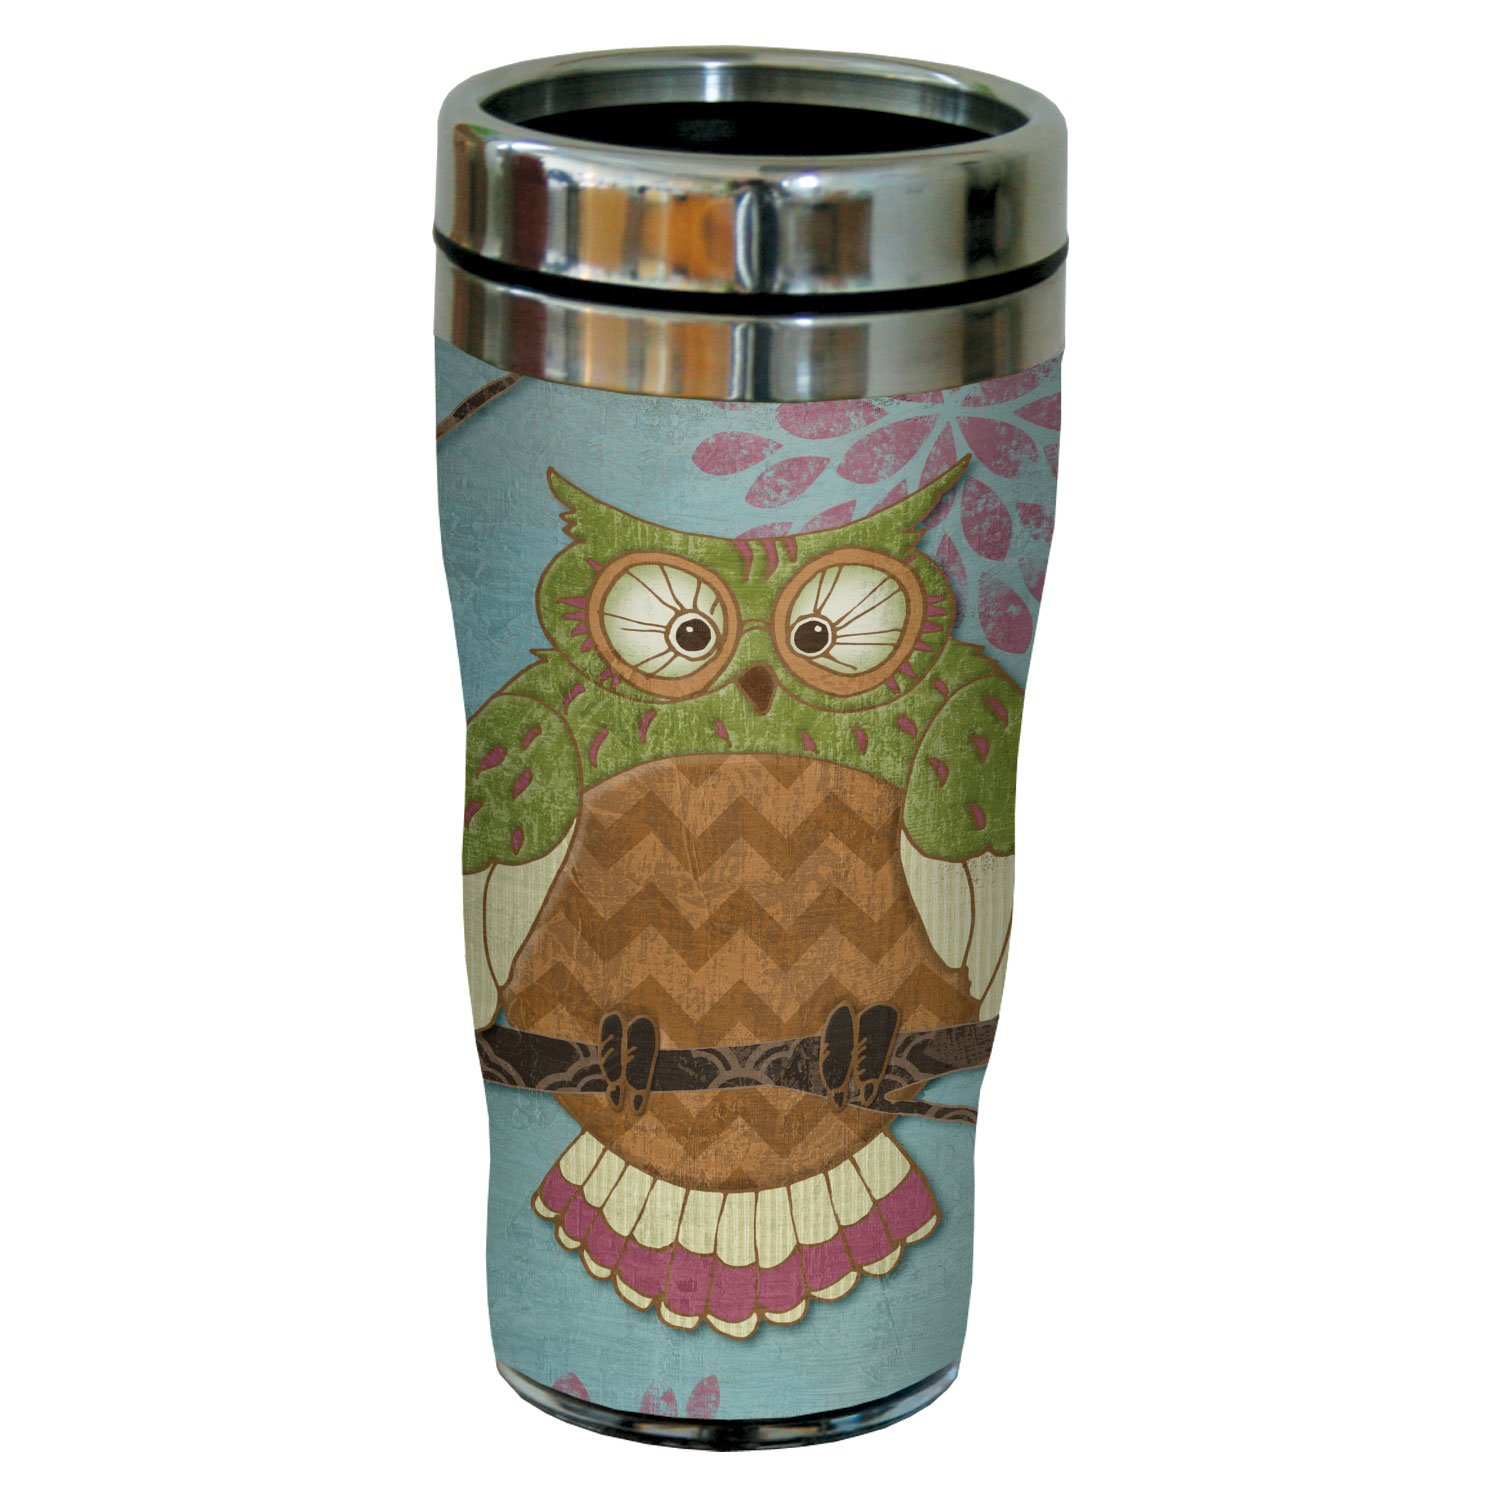 Tree-Free Greetings sg23429 Whimsical Owl on Blue by Paul Brent Sip N Go Stainless Steel Tumbler 16-Ounce